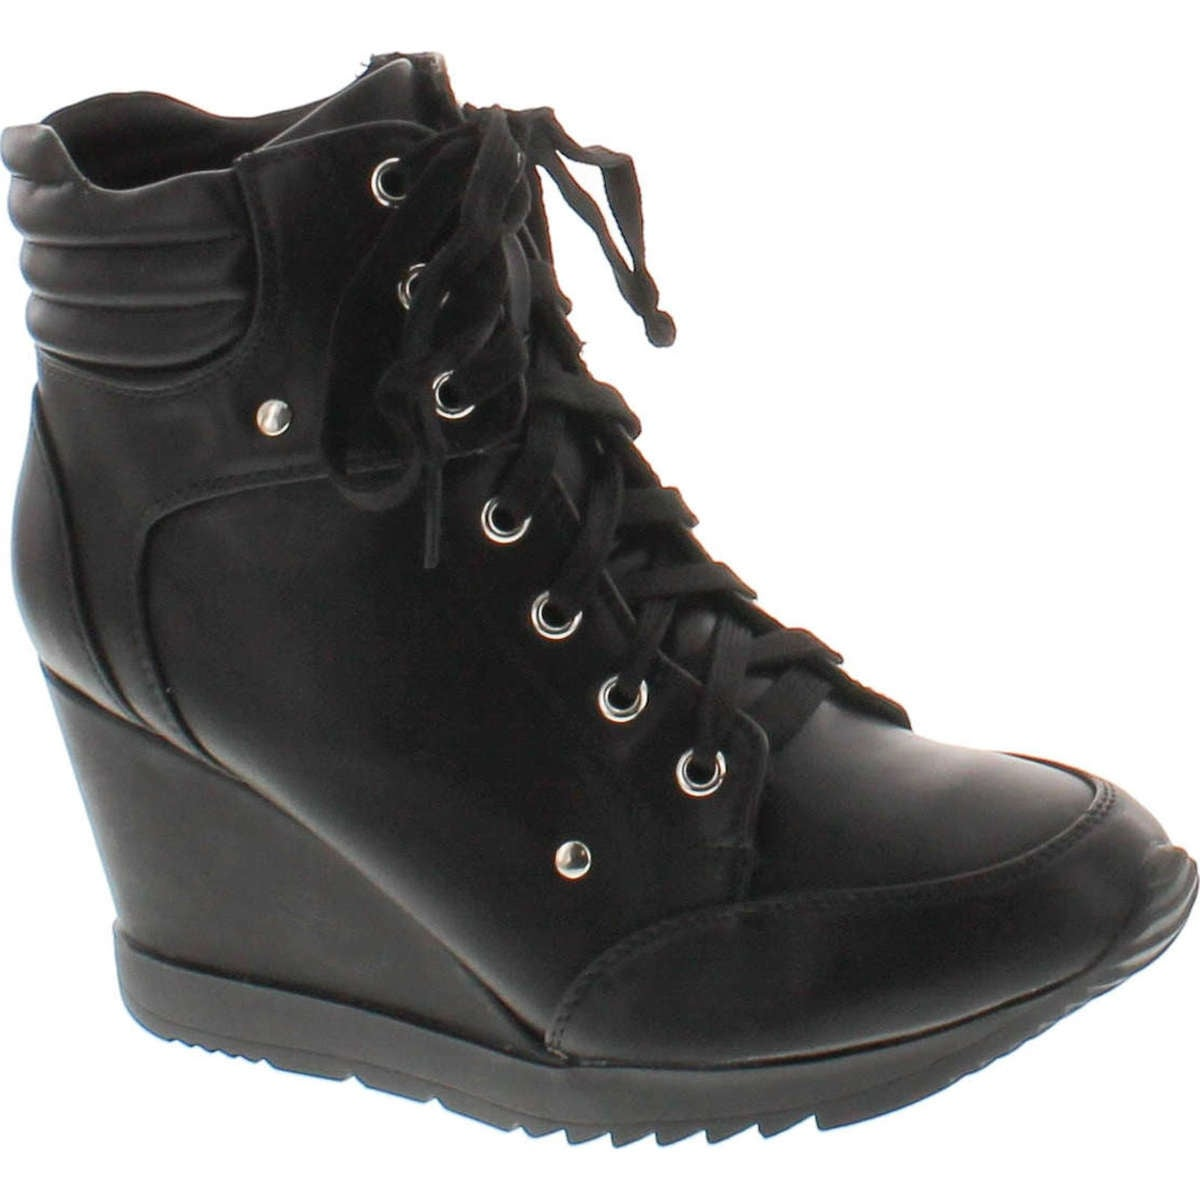 8ad0d7606993 Forever Adriana11 Women Sporty Leatherette Lace-Up High Top Wedge Sneaker  Bootie Shoes - Black